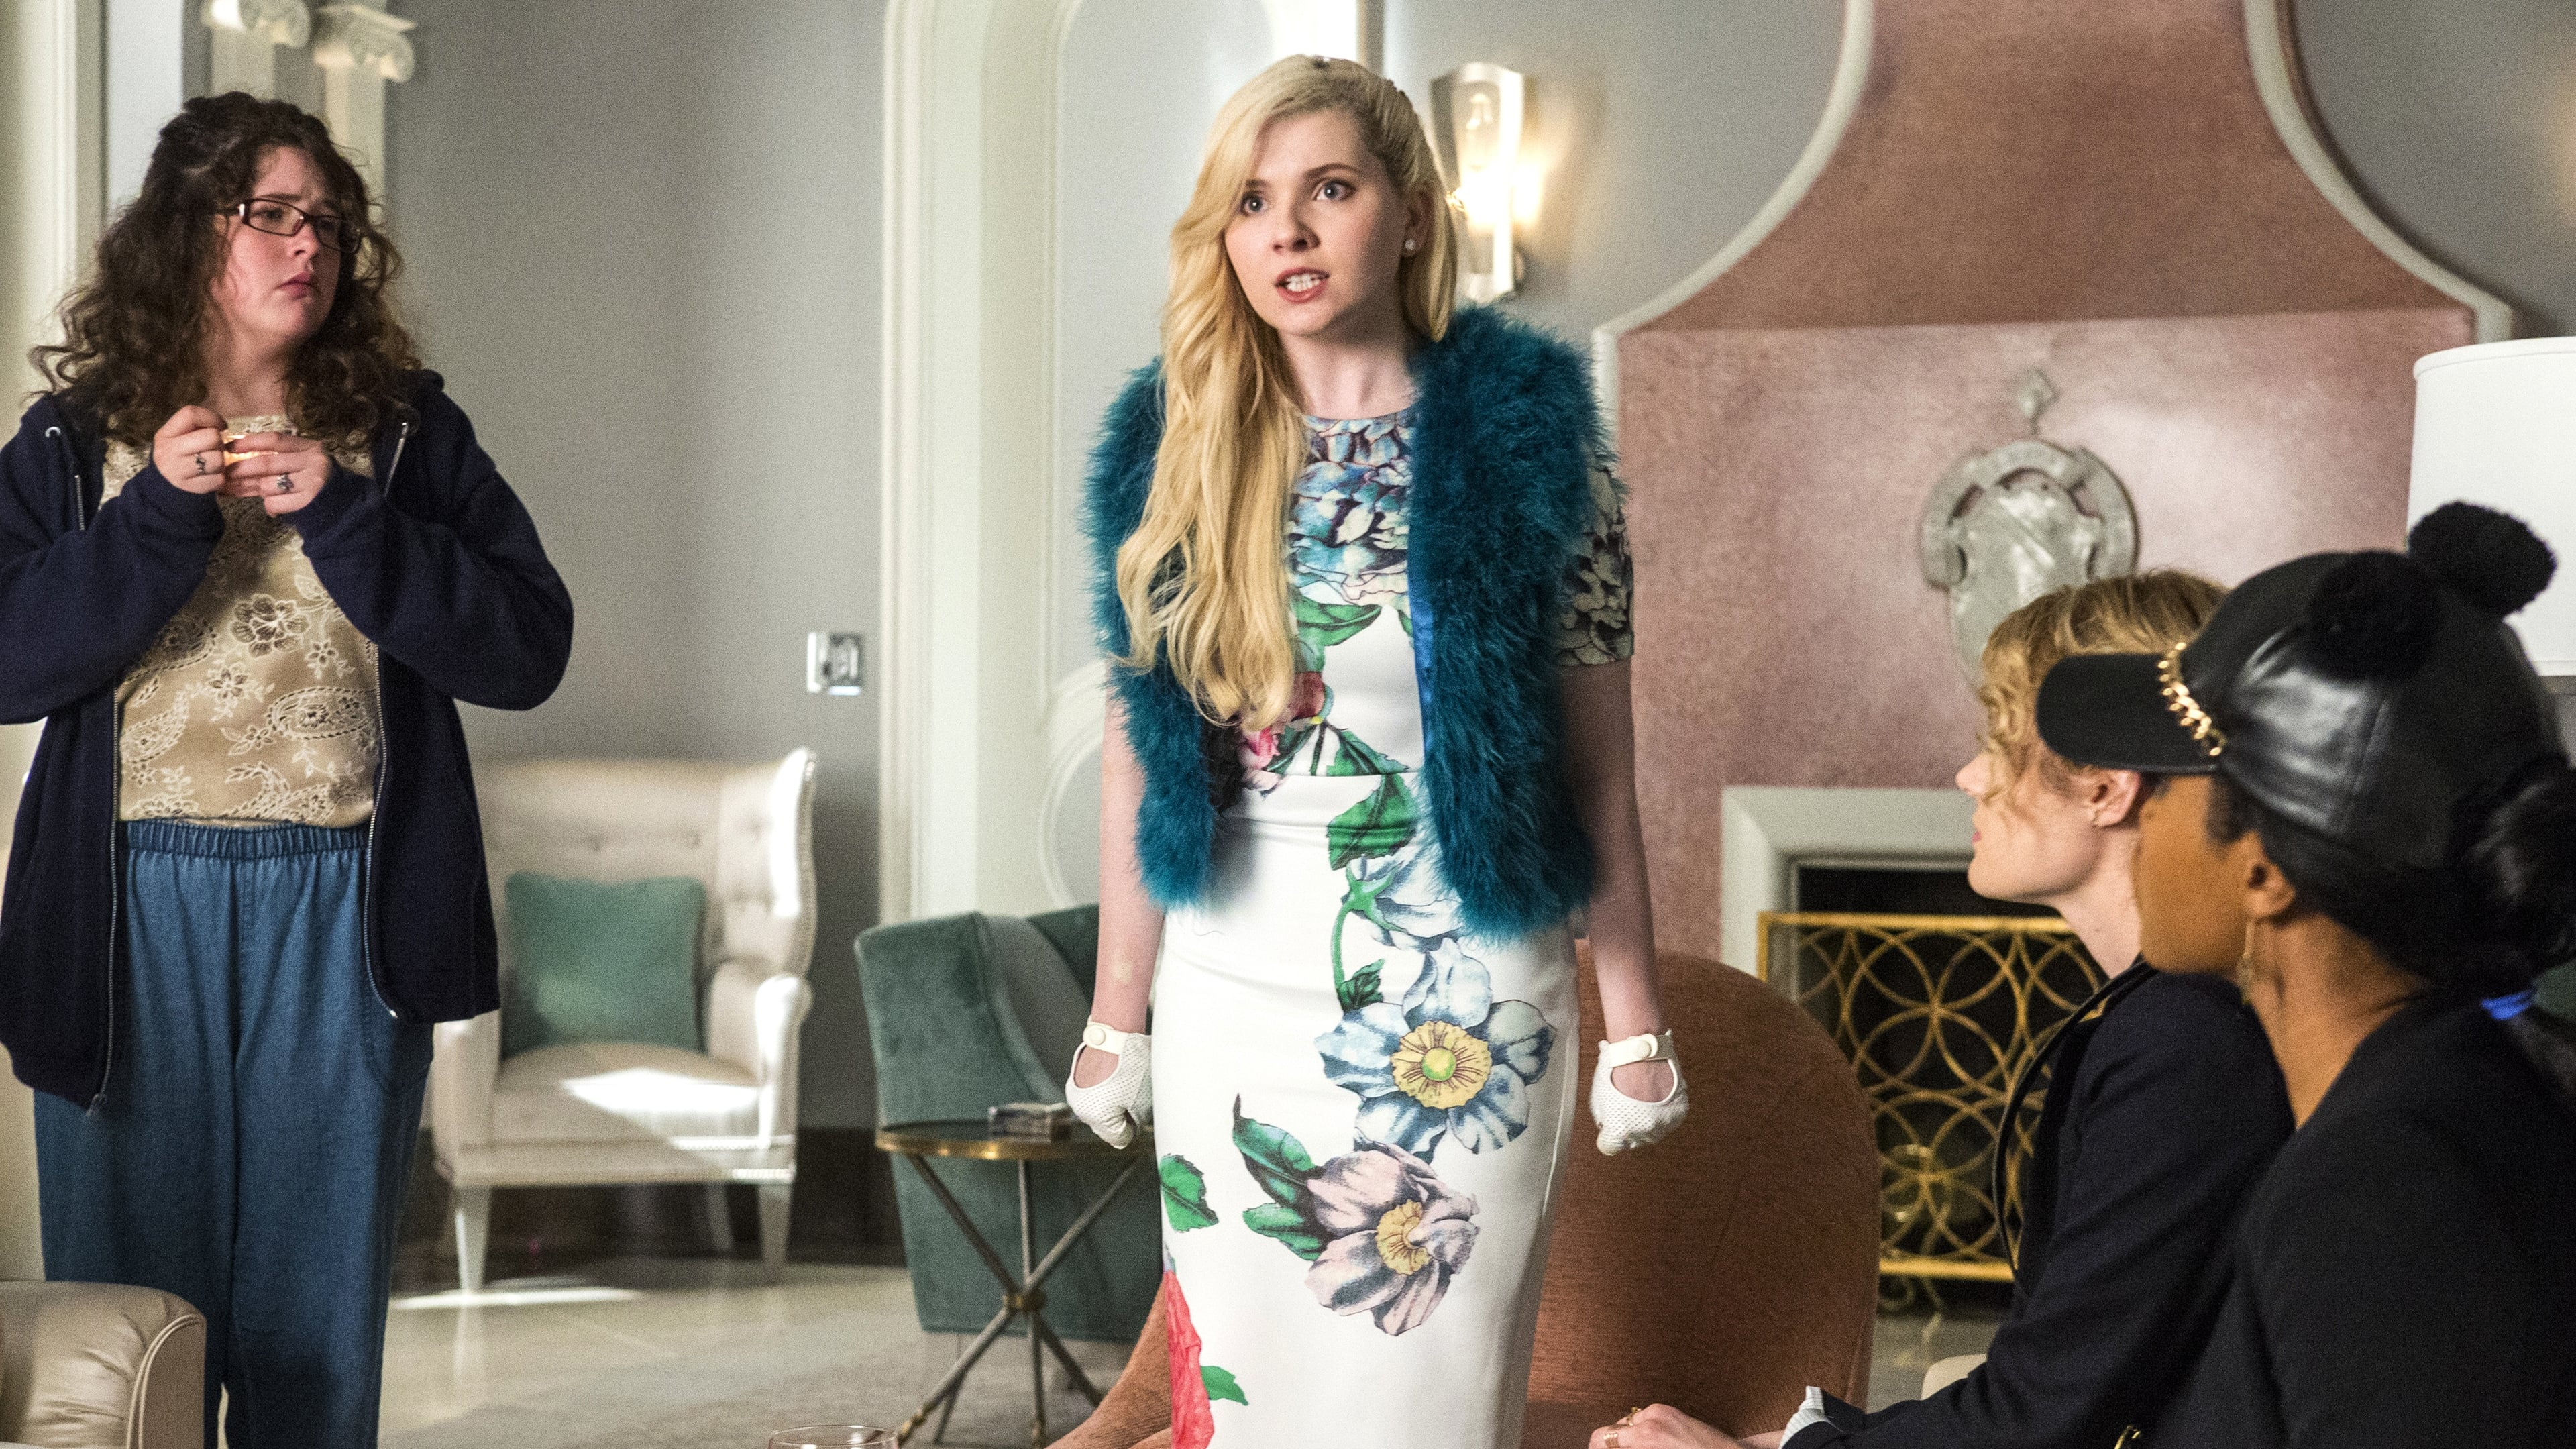 watch scream queens 1x3 online for free rarbg